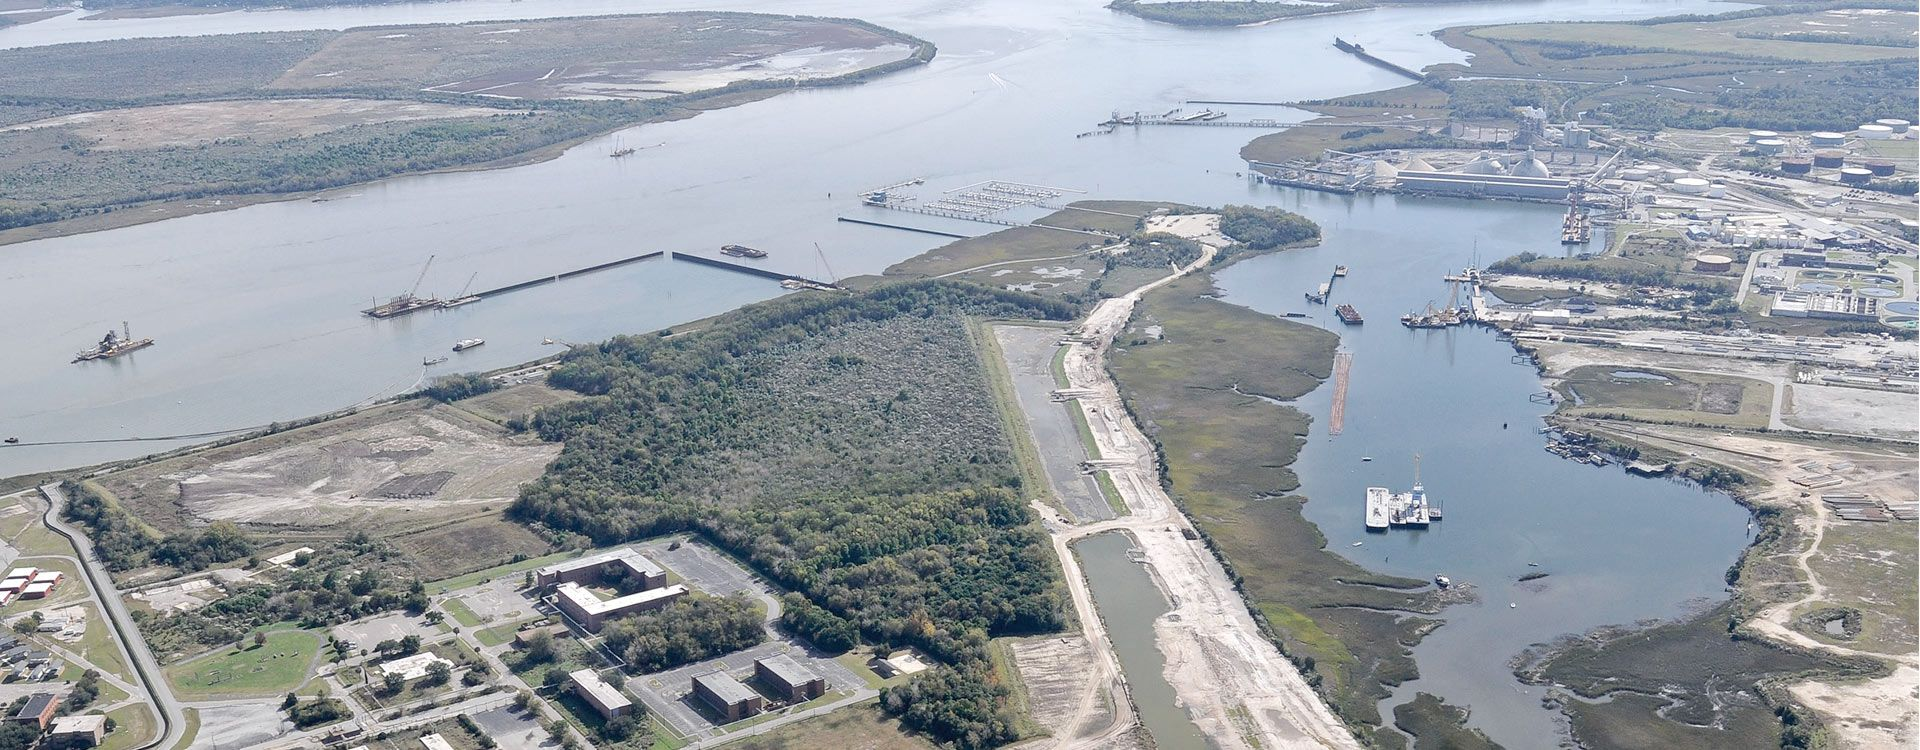 South Carolina Port Expansion Program